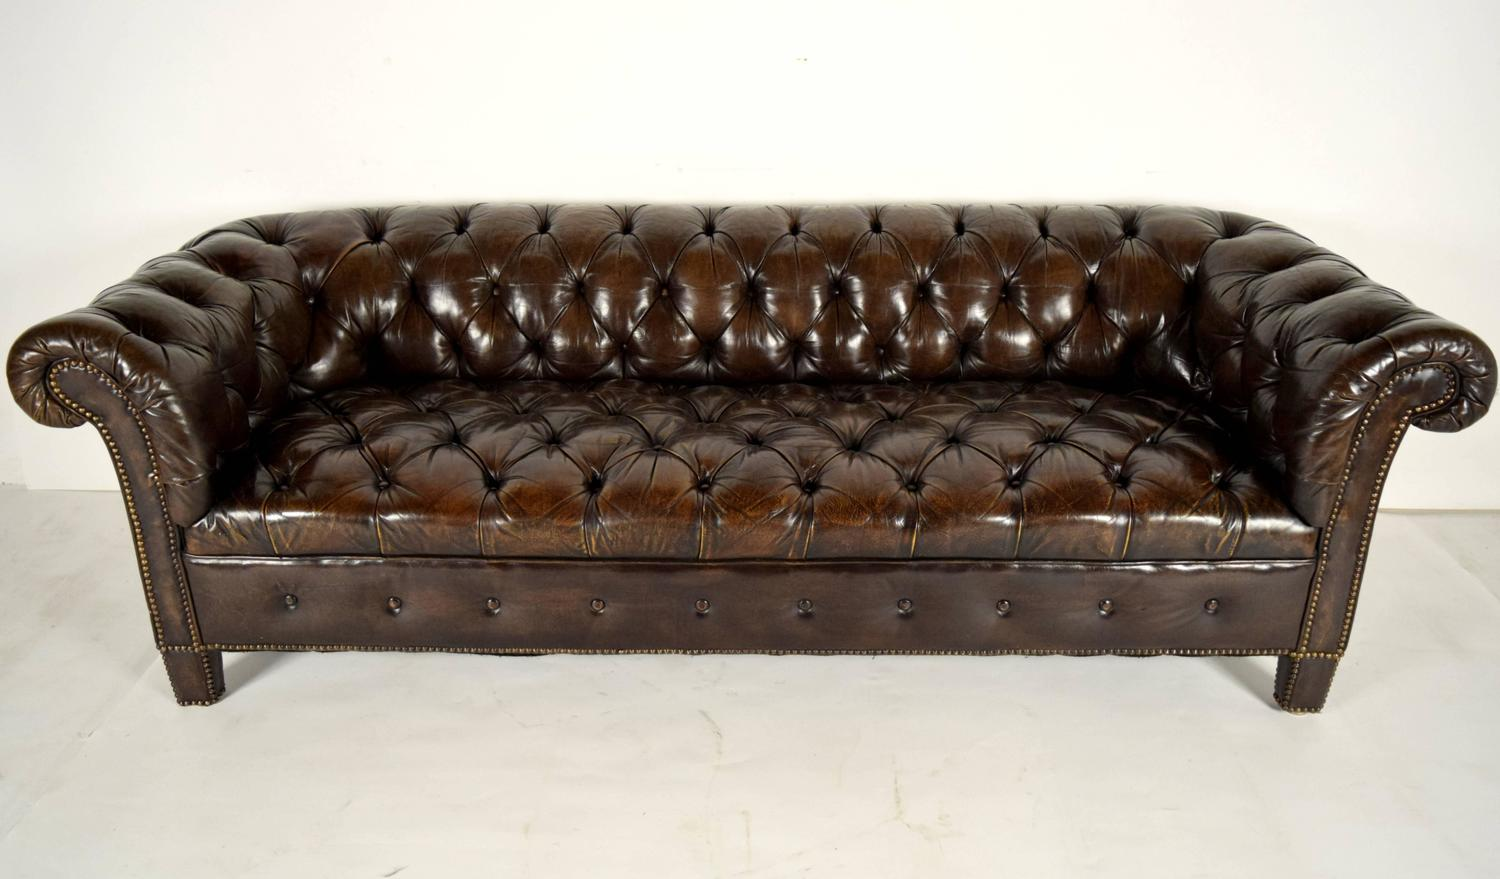 Vintage Chesterfield Leather Tufted Sofa at 1stdibs